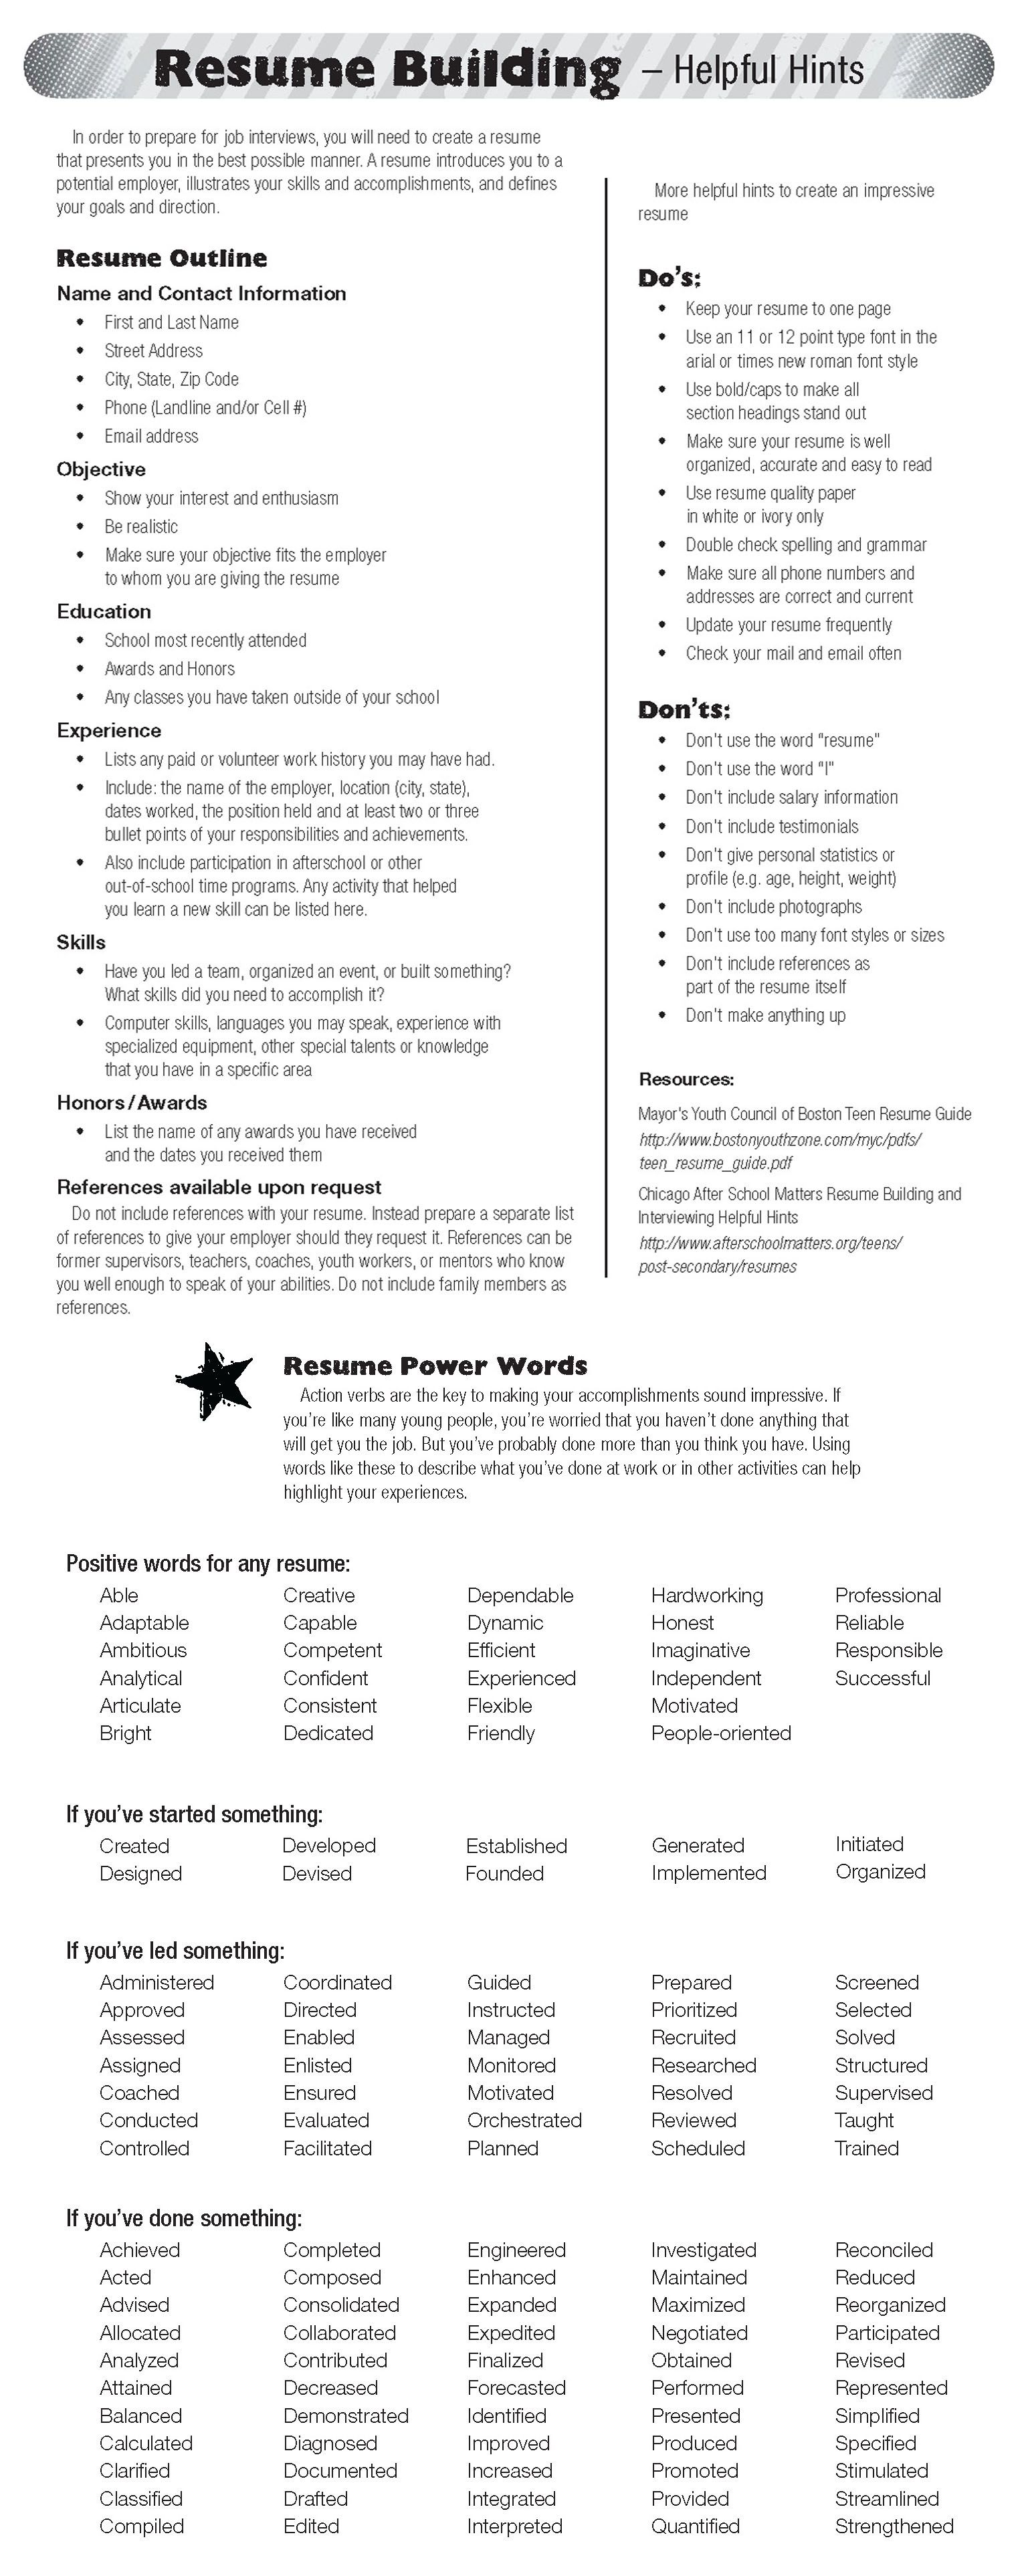 Resume Tips And Power Words Resume  Interview    Job